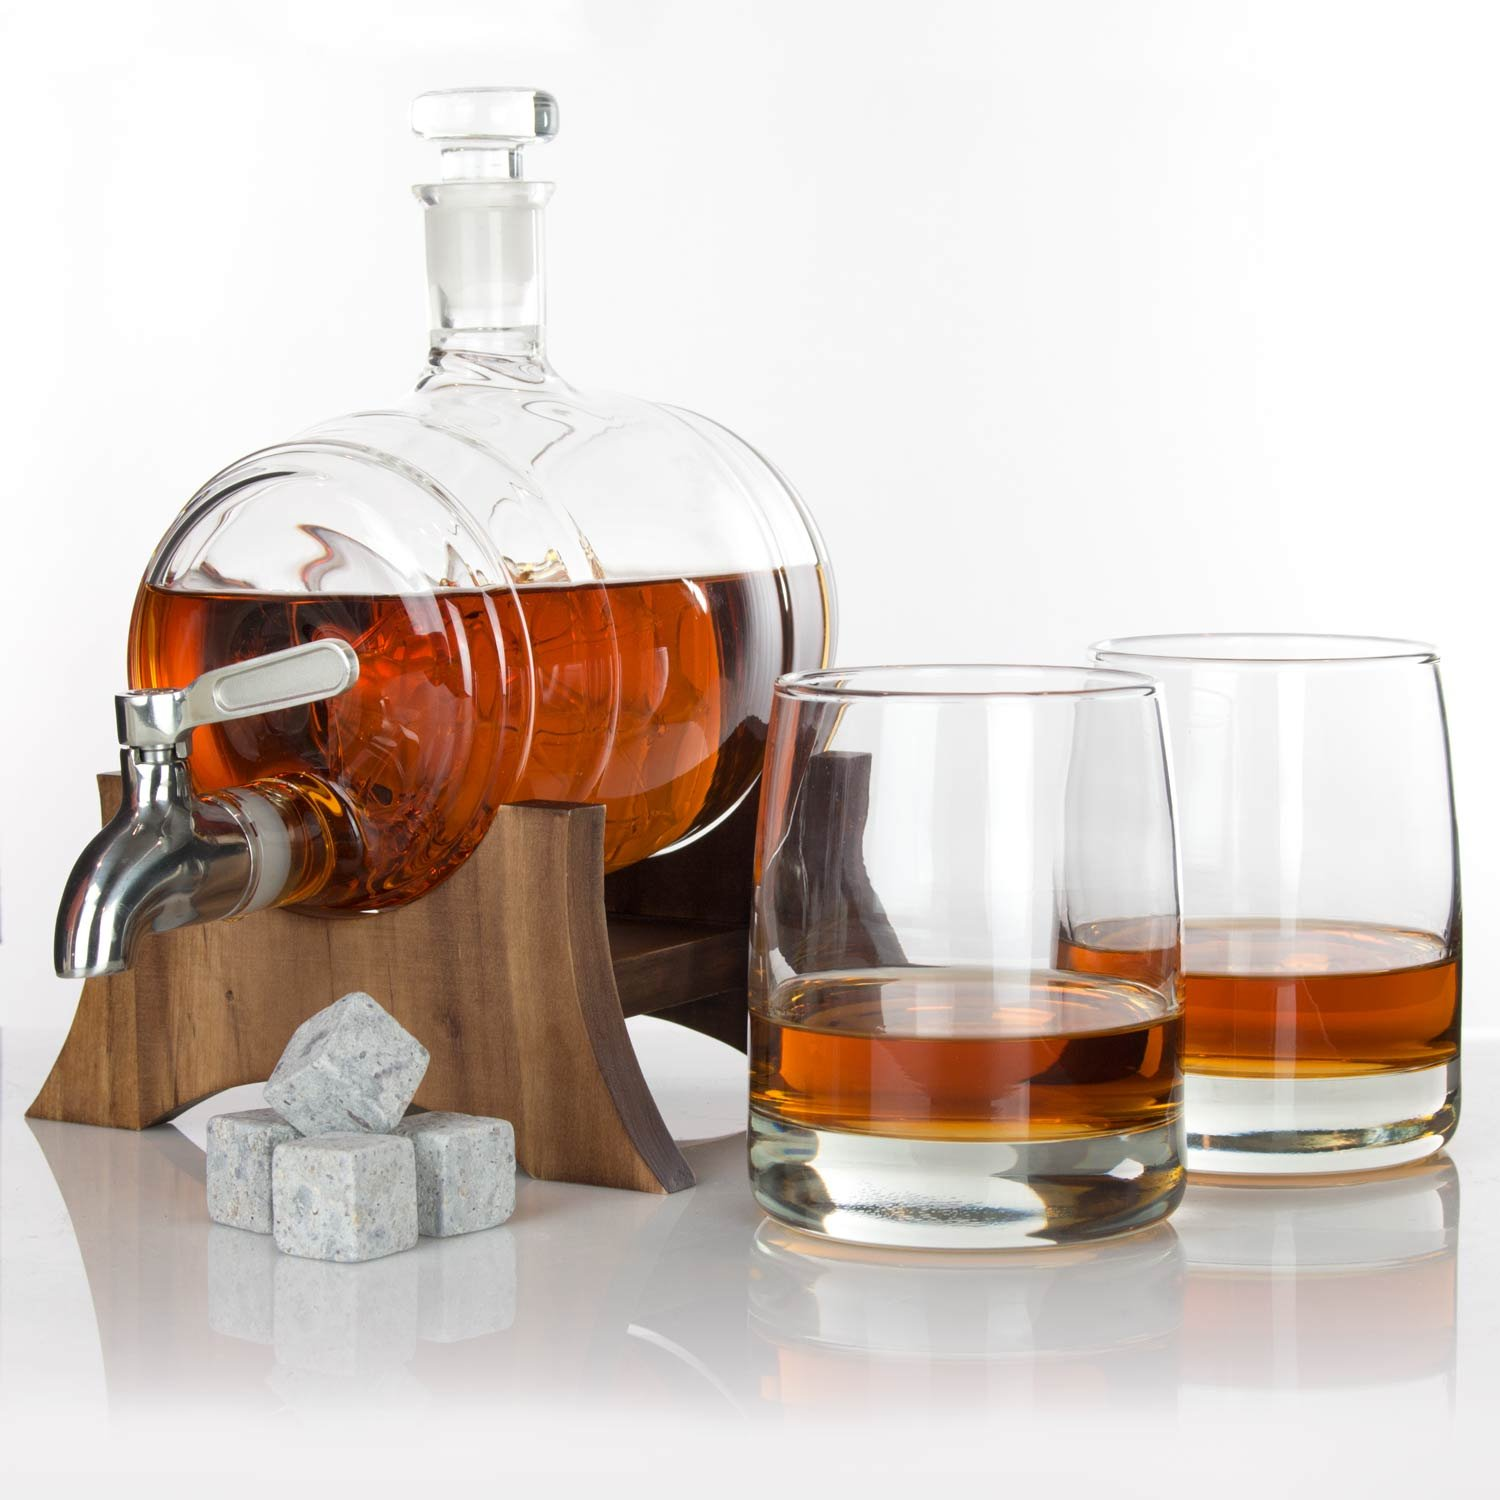 Atterstone Barrel Whiskey Decanter Set / Full set with two Whiskey Glasses, Custom Decanter Stand, Whiskey Stone Set, Stainless Steel Dispenser and funnel